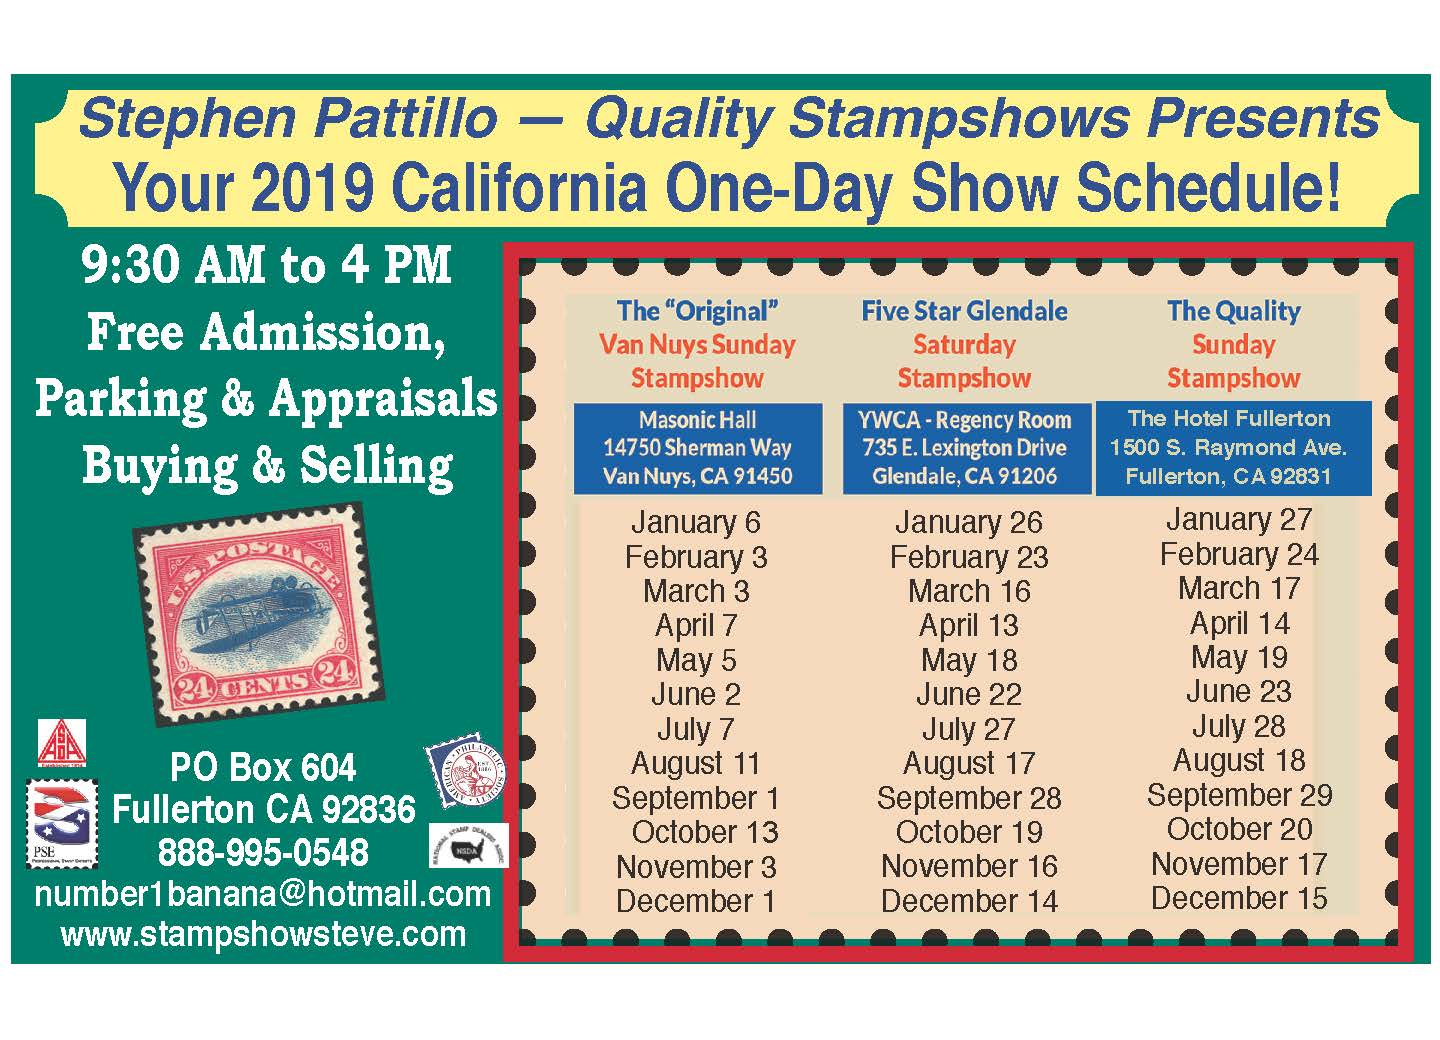 Stephen Patillo - Quality Stampshows